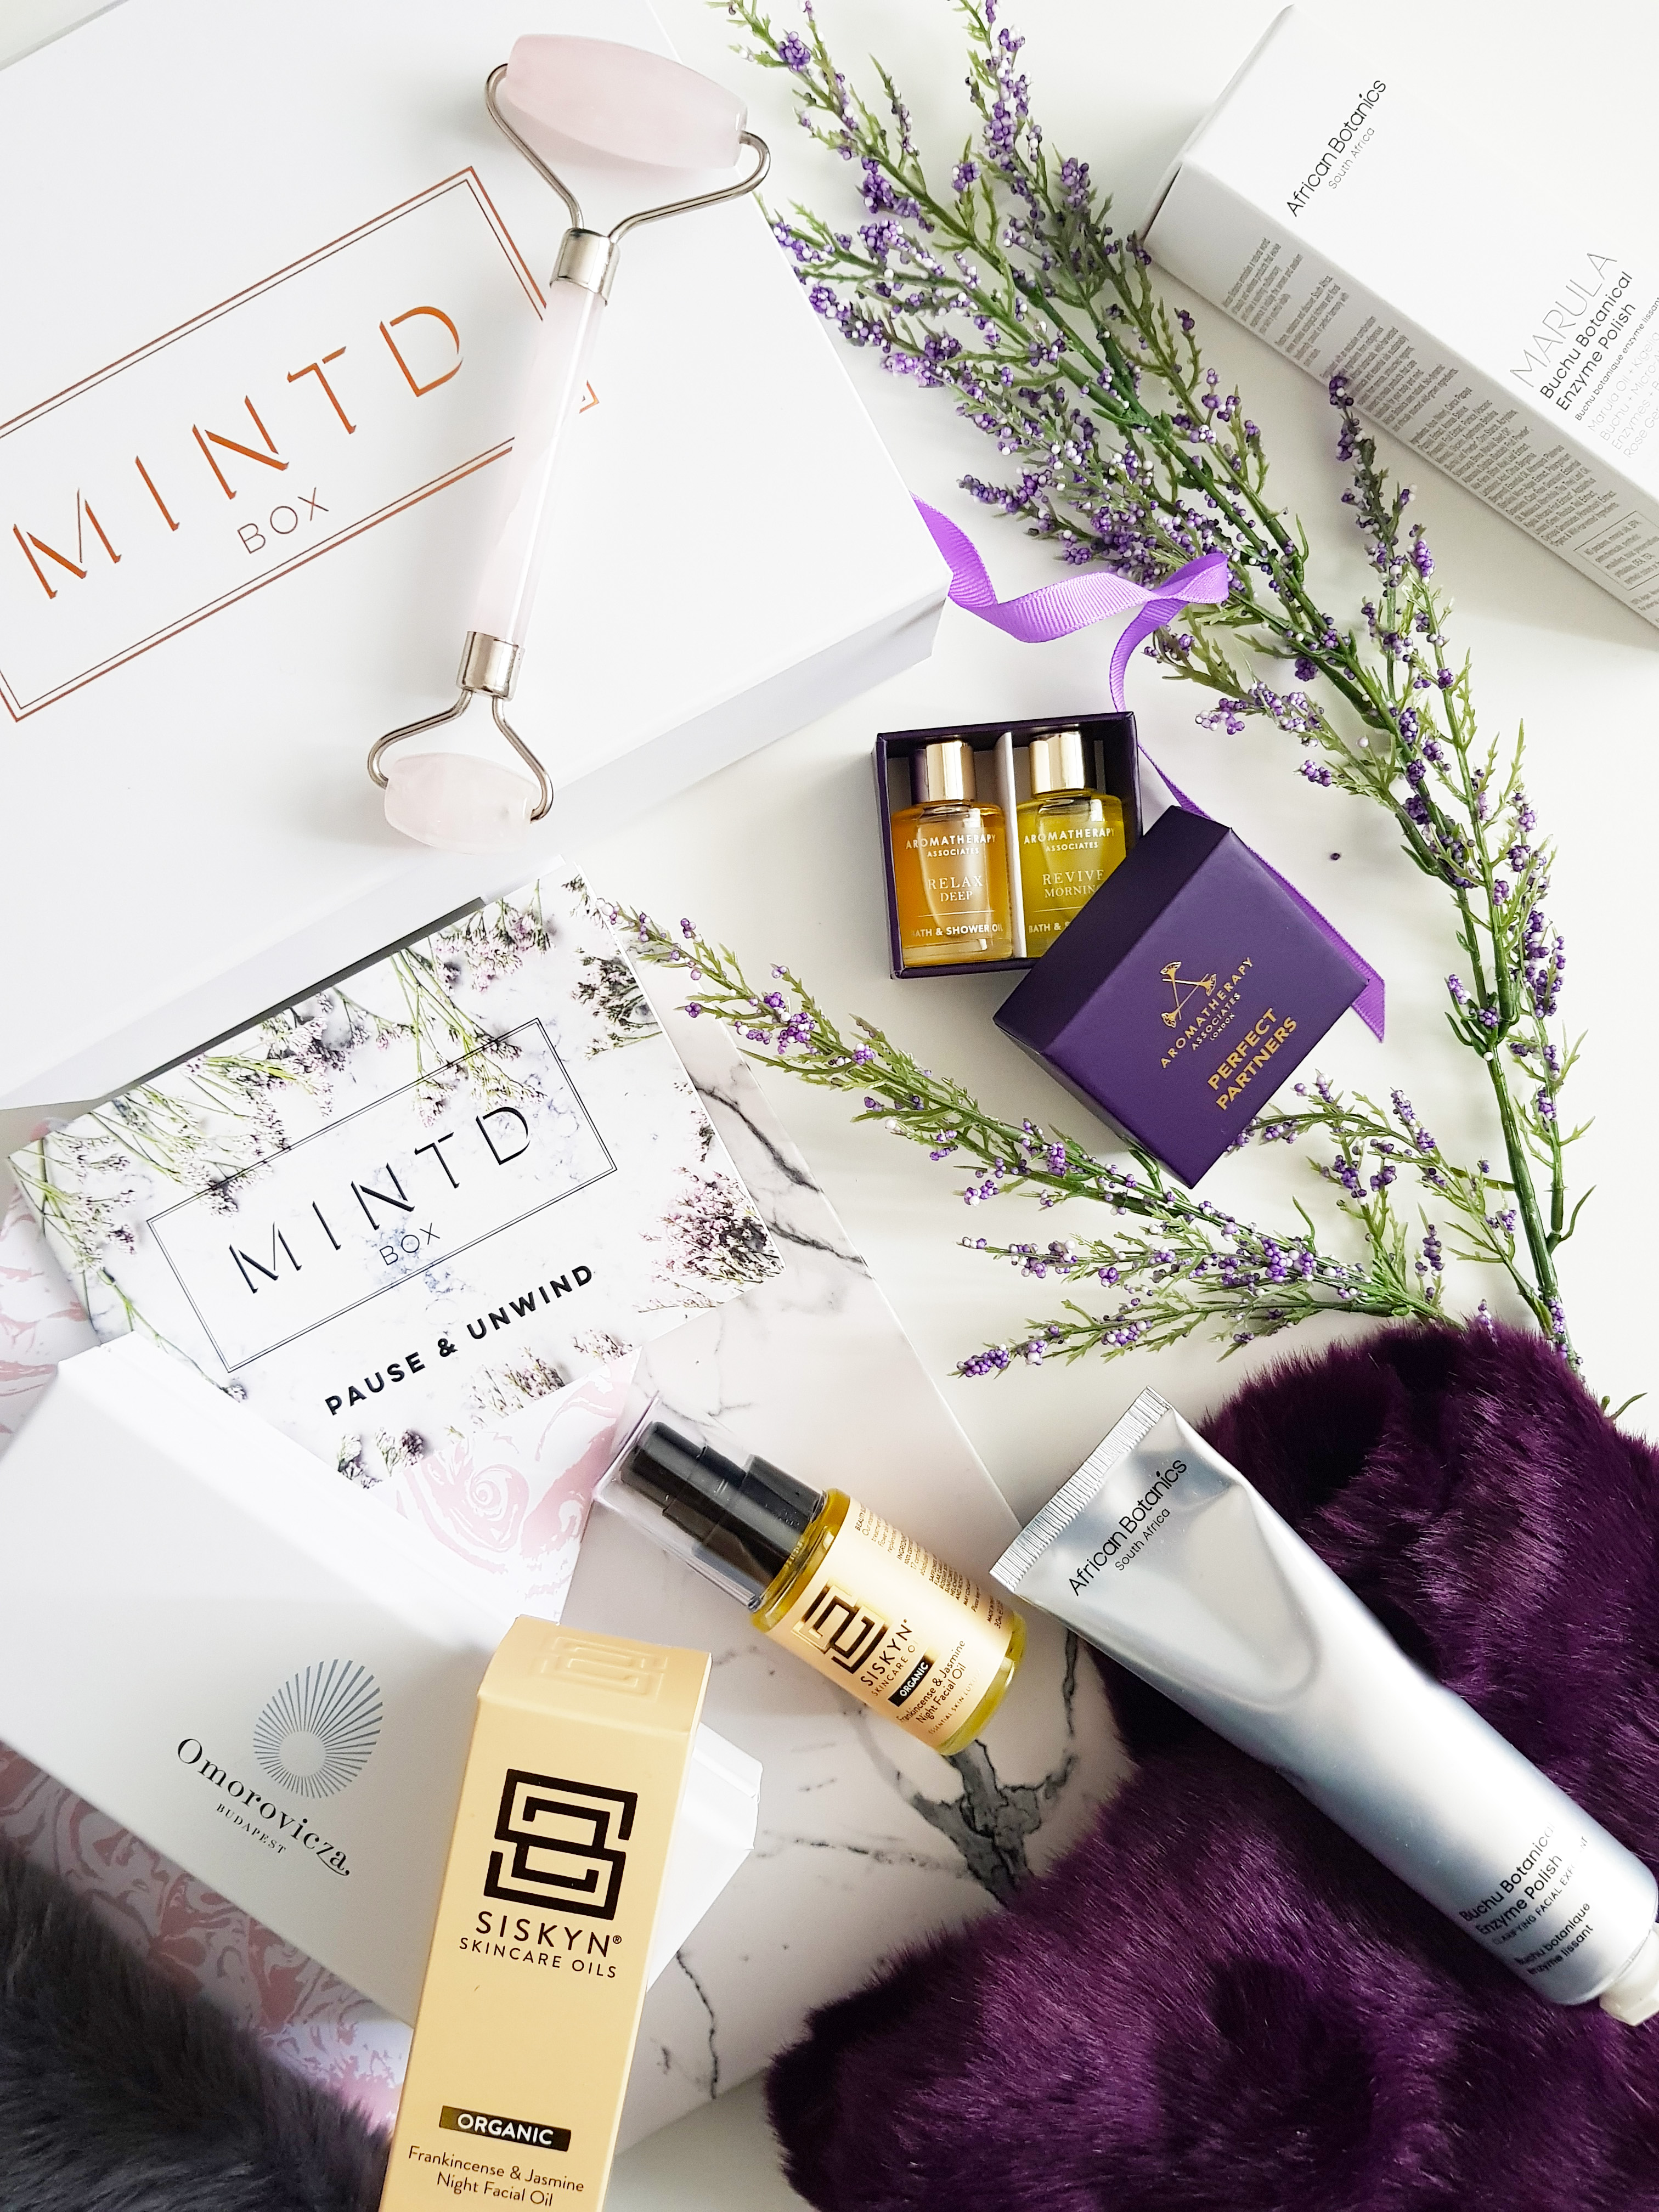 Mintd Box Pause & Unwind APril Box - Luxury Beauty Subscription Box